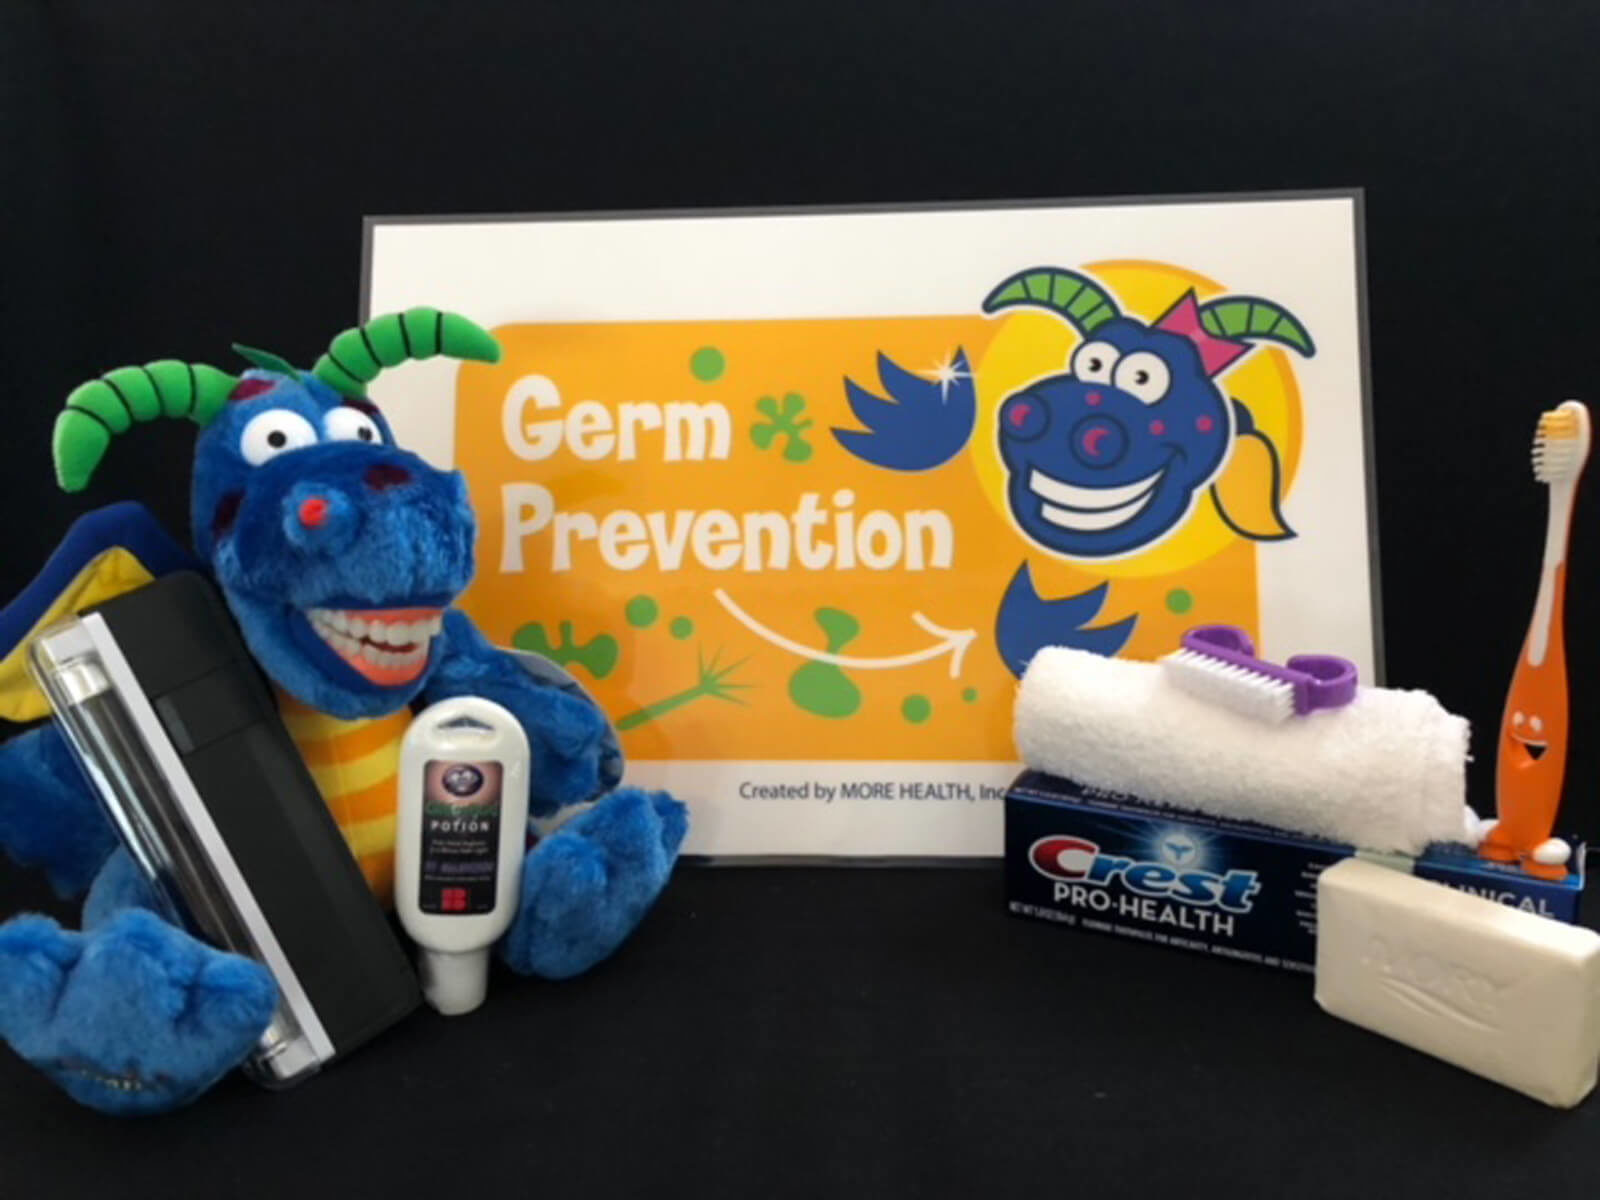 Germ Prevention Kit